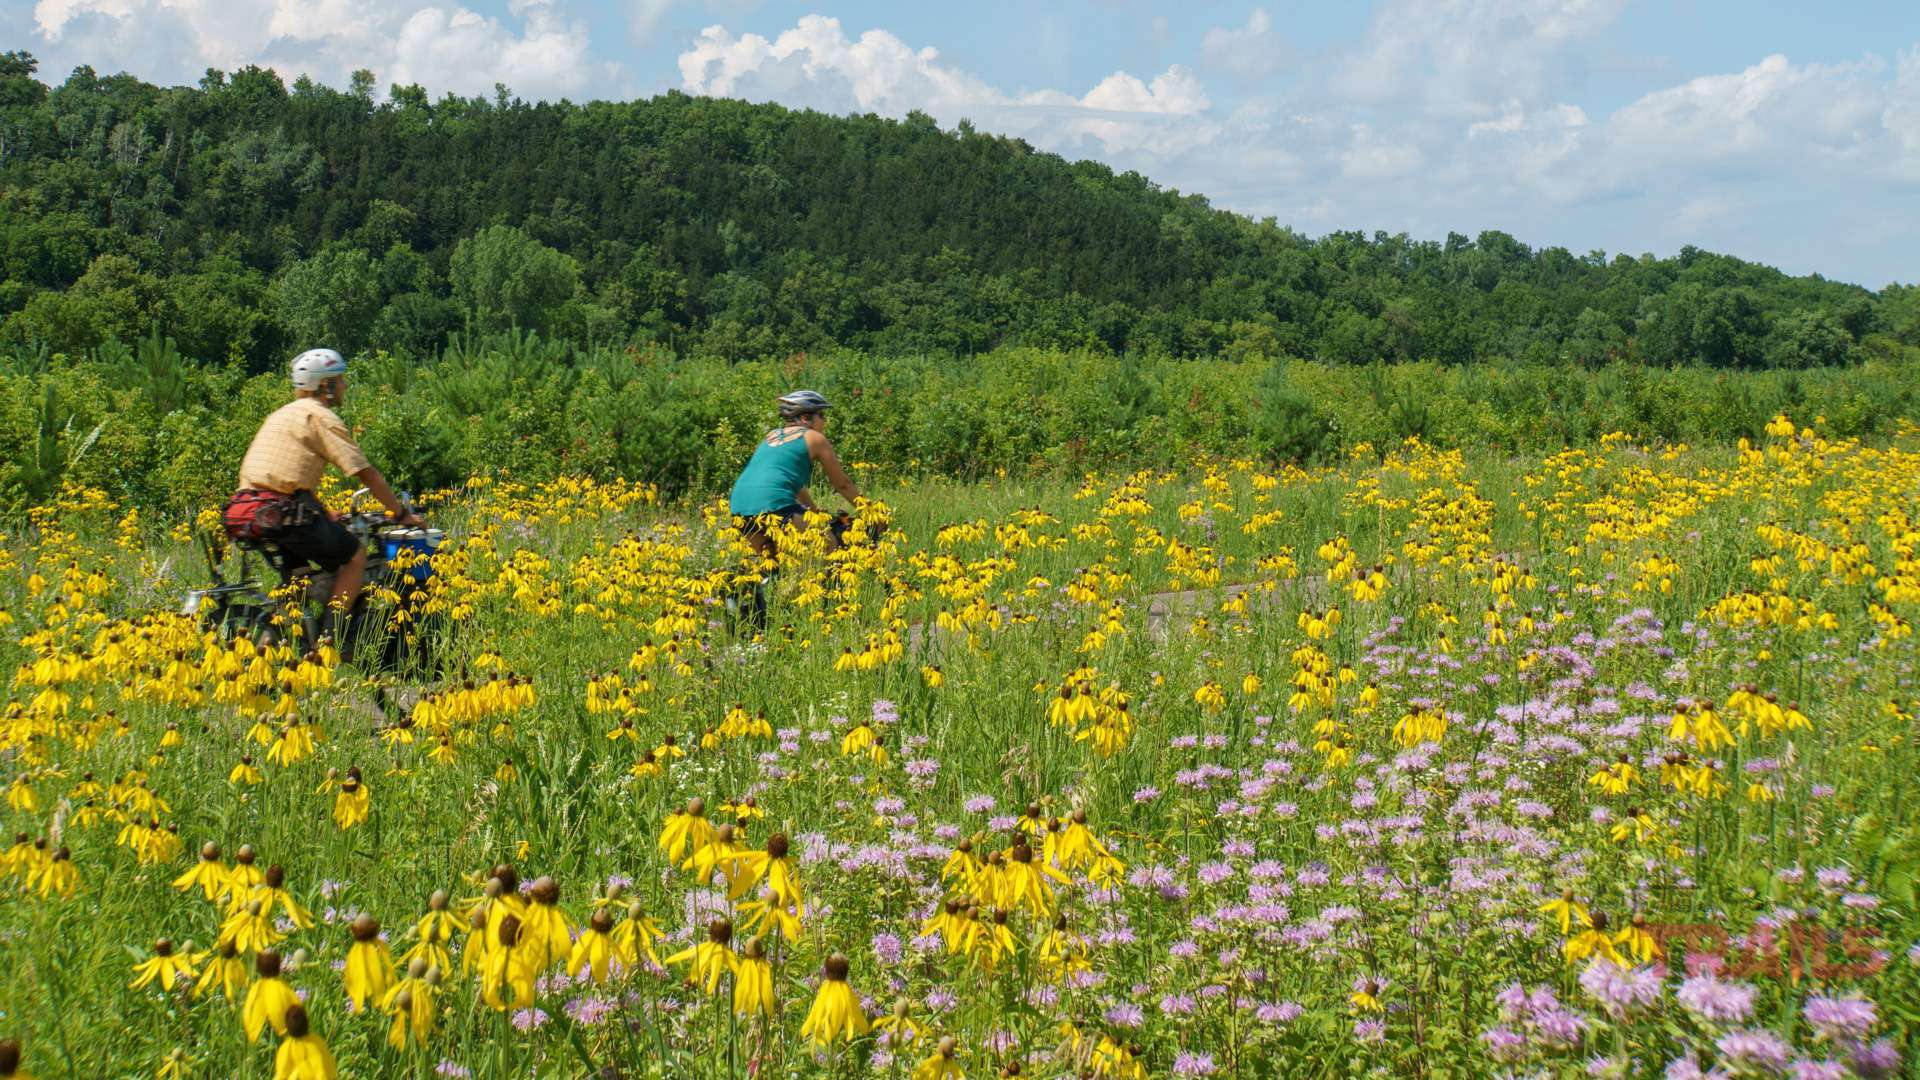 Two bicyclists ride through a field of flowers on a bike trail